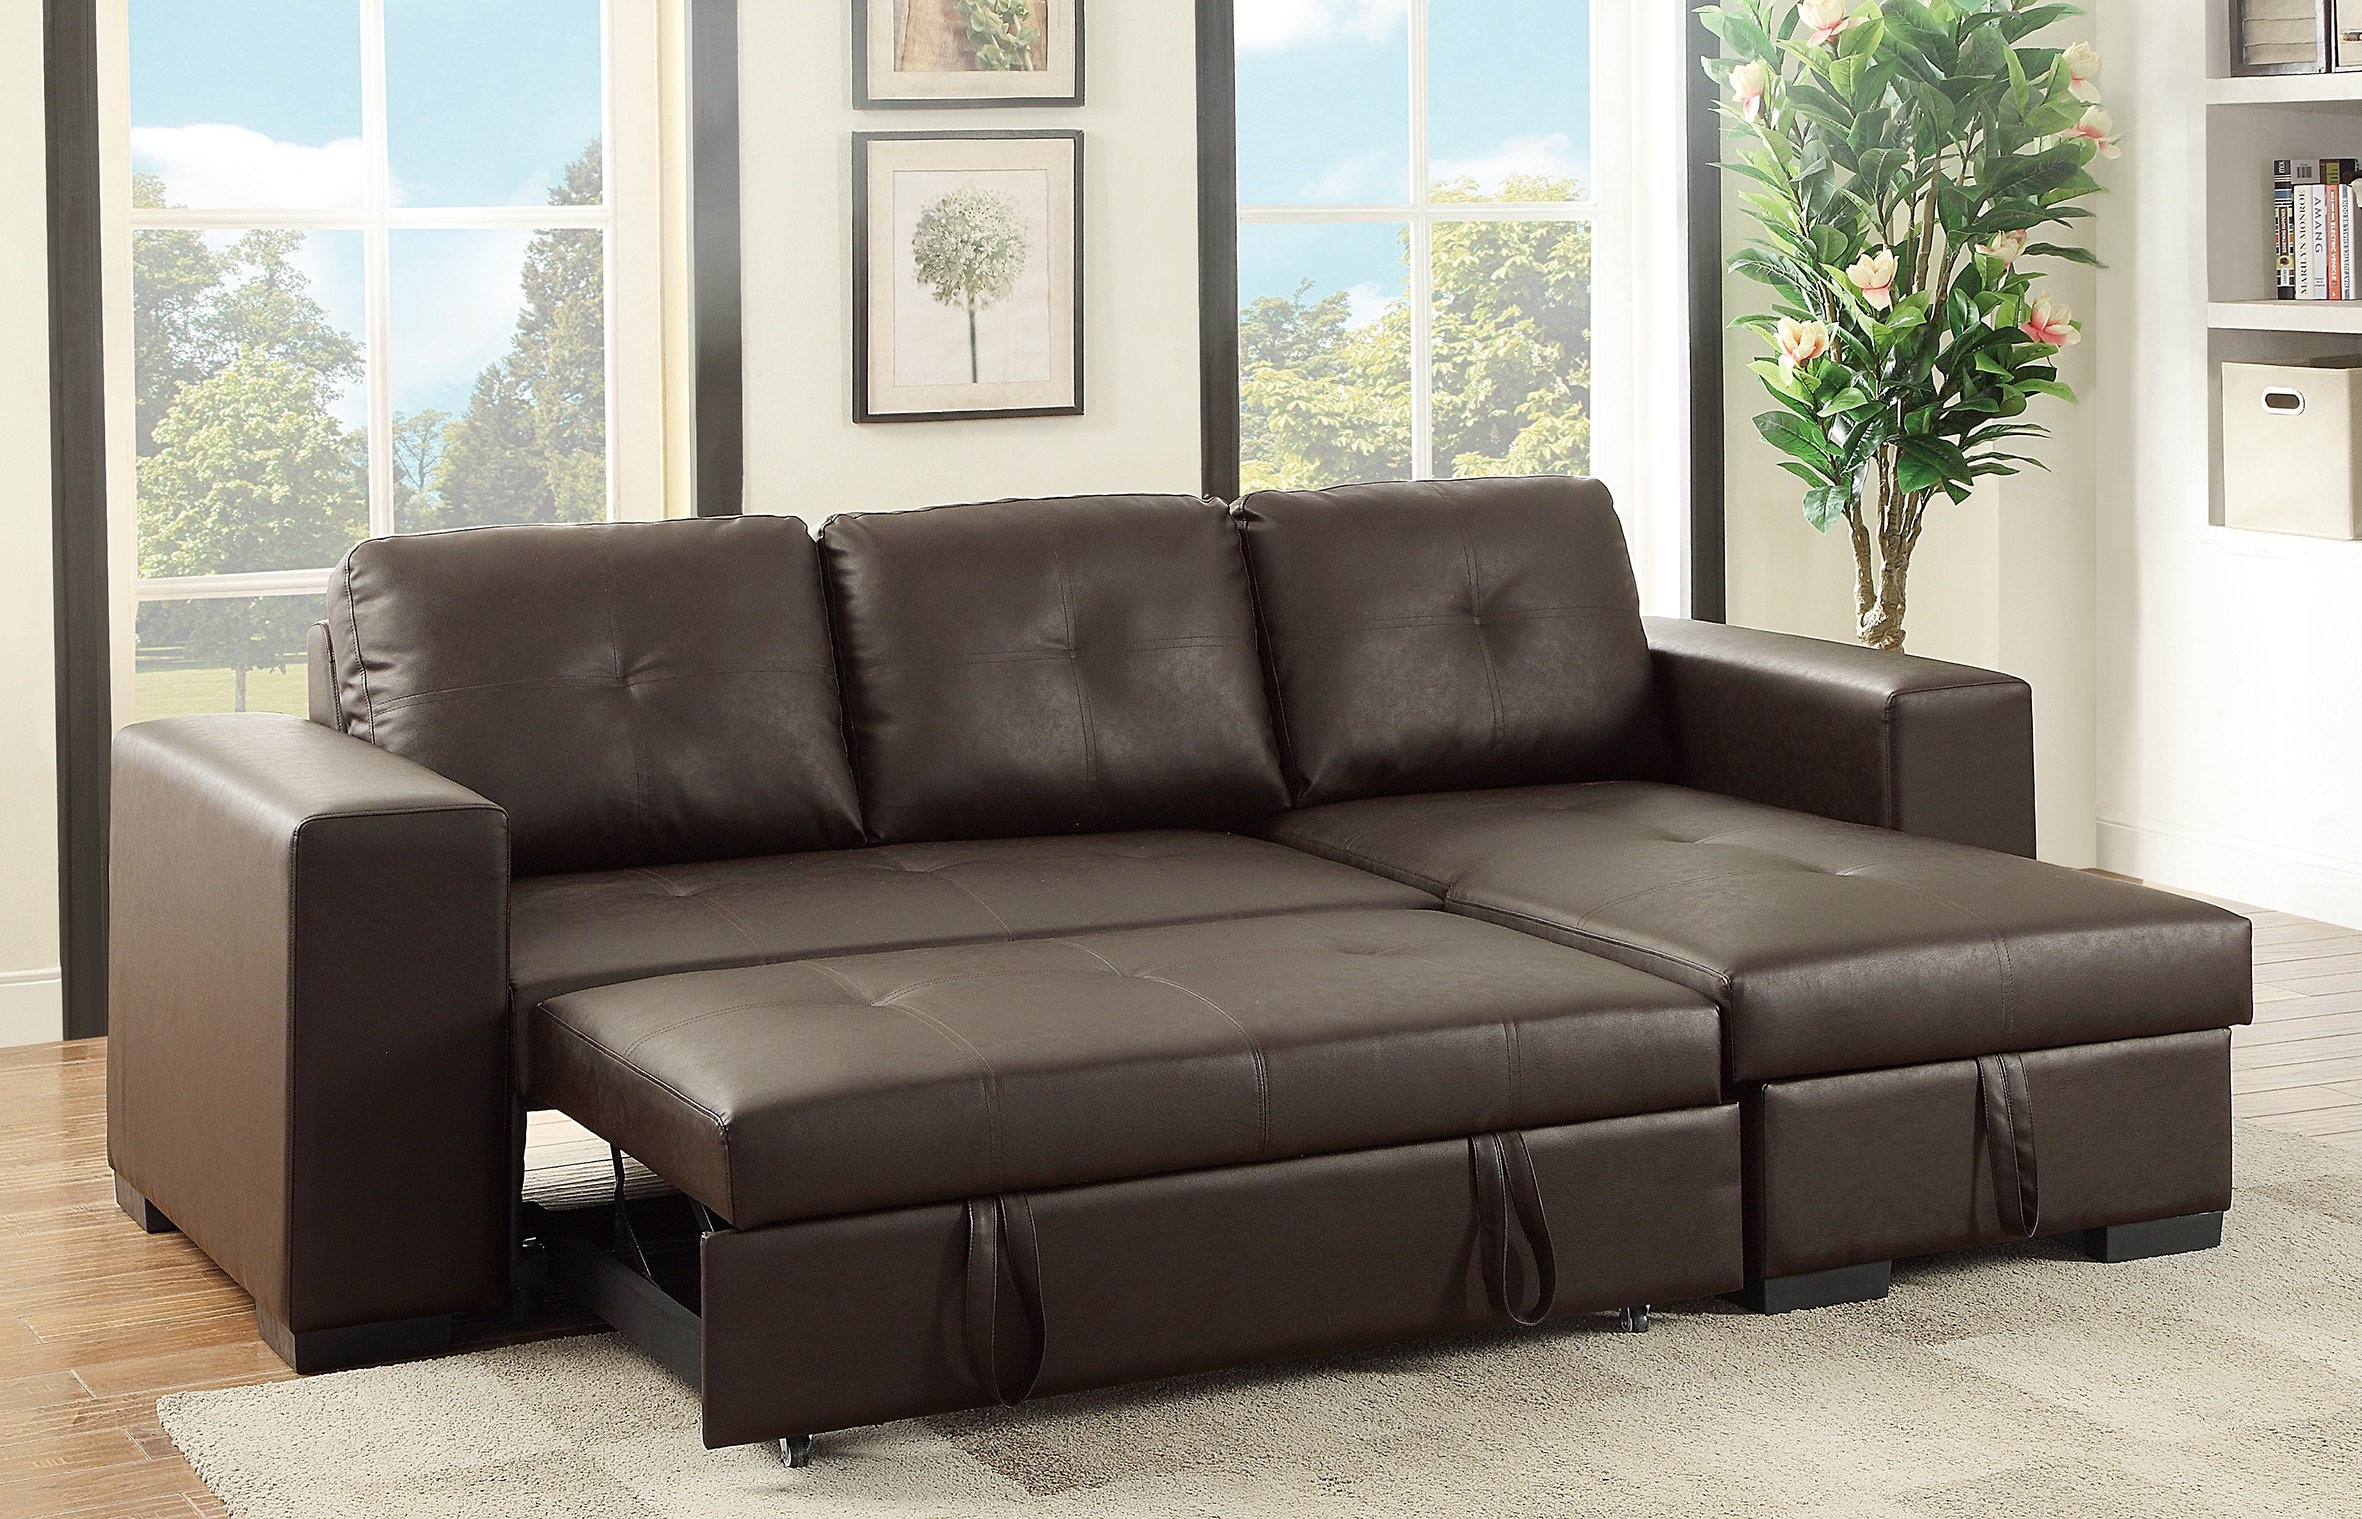 F6930 Espresso Convertible Sectional Sofa Poundex For Convertible Sectional Sofas (Image 5 of 15)